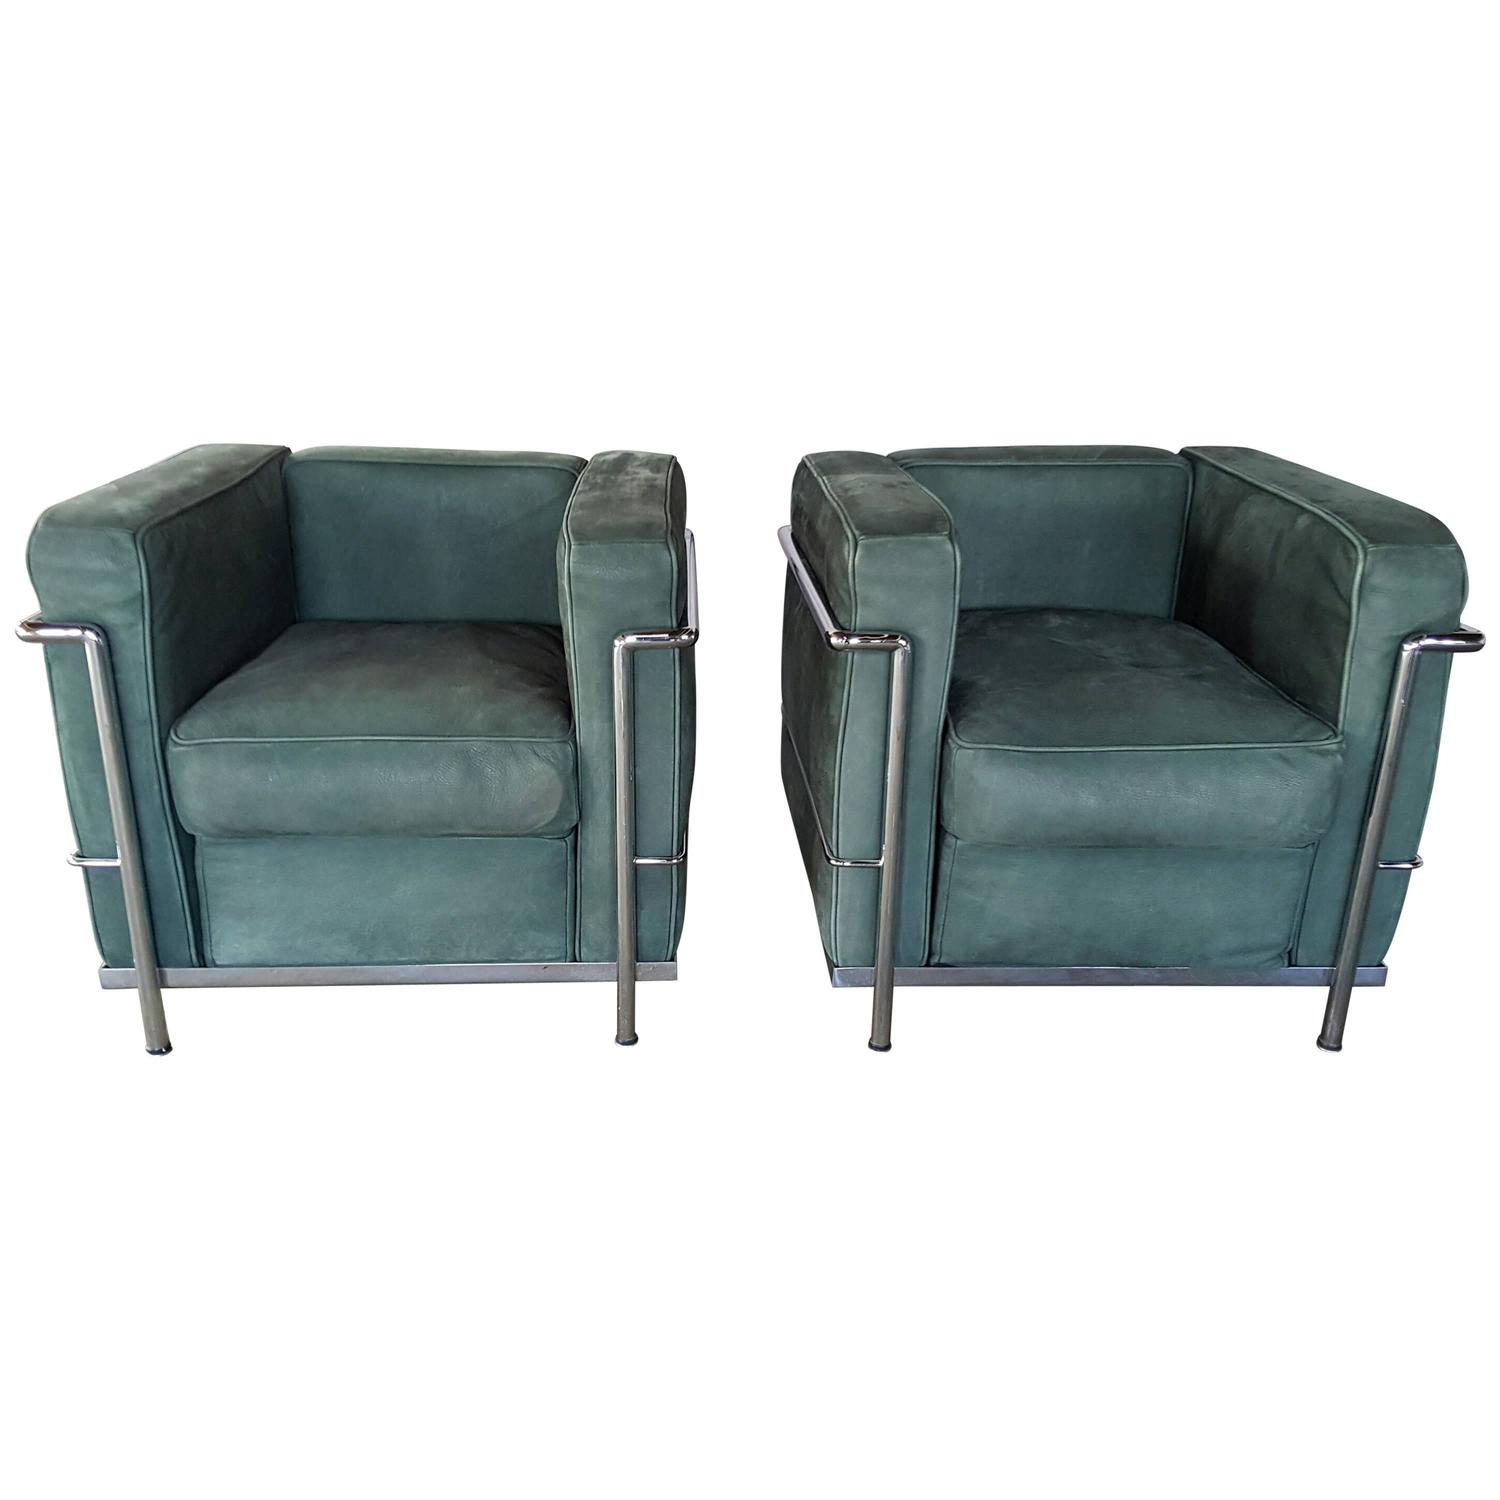 Pair of Le Corbusier LC2 Lounge Chairs Green Suede and Chrome at